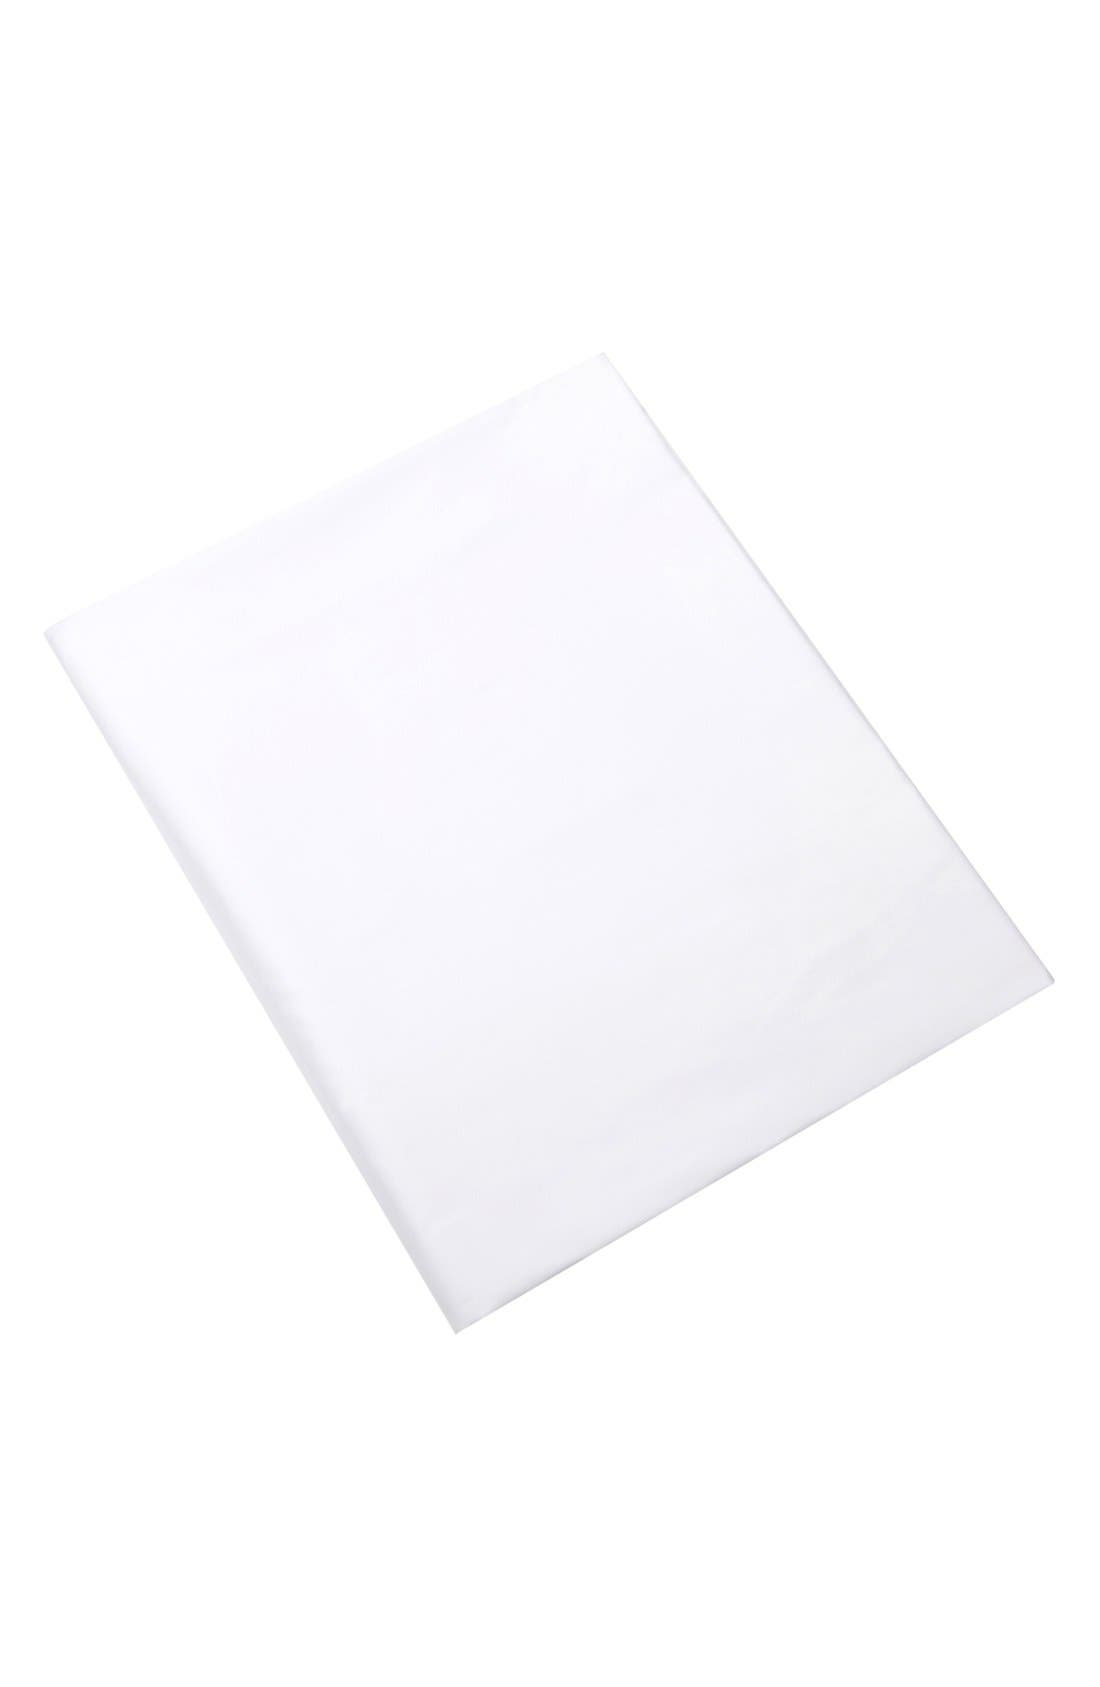 Main Image - Blissliving Home 'Mayfair White' Fitted Sheet